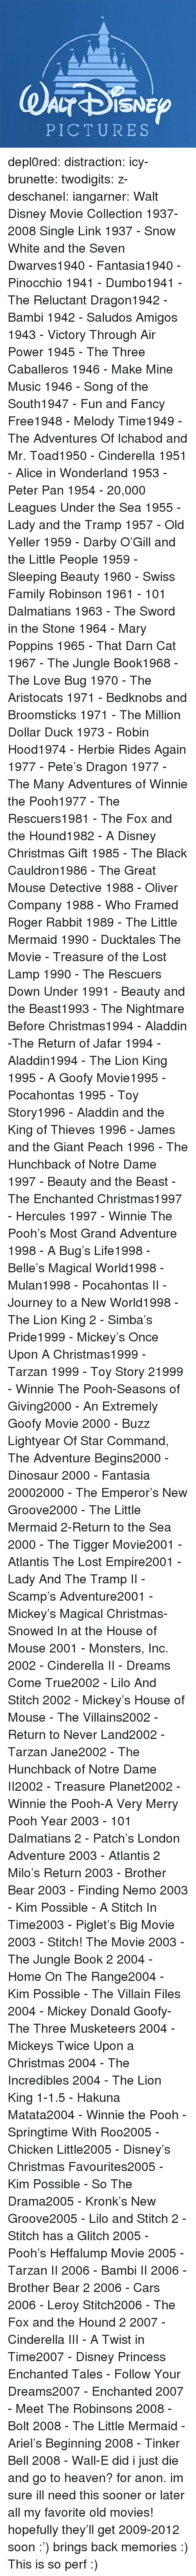 hunchback: PICTURES depl0red:  distraction:   icy-brunette:   twodigits:   z-deschanel:   iangarner:   Walt Disney Movie Collection 1937-2008 Single Link      1937 - Snow White and the Seven Dwarves1940 - Fantasia1940 - Pinocchio 1941 - Dumbo1941 - The Reluctant Dragon1942 - Bambi 1942 - Saludos Amigos 1943 - Victory Through Air Power 1945 - The Three Caballeros 1946 - Make Mine Music 1946 - Song of the South1947 - Fun and Fancy Free1948 - Melody Time1949 - The Adventures Of Ichabod and Mr. Toad1950 - Cinderella 1951 - Alice in Wonderland 1953 - Peter Pan 1954 - 20,000 Leagues Under the Sea 1955 - Lady and the Tramp 1957 - Old Yeller 1959 - Darby O'Gill and the Little People 1959 - Sleeping Beauty 1960 - Swiss Family Robinson 1961 - 101 Dalmatians 1963 - The Sword in the Stone 1964 - Mary Poppins 1965 - That Darn Cat 1967 - The Jungle Book1968 - The Love Bug 1970 - The Aristocats 1971 - Bedknobs and Broomsticks 1971 - The Million Dollar Duck 1973 - Robin Hood1974 - Herbie Rides Again 1977 - Pete's Dragon 1977 - The Many Adventures of Winnie the Pooh1977 - The Rescuers1981 - The Fox and the Hound1982 - A Disney Christmas Gift 1985 - The Black Cauldron1986 - The Great Mouse Detective 1988 - Oliver  Company 1988 - Who Framed Roger Rabbit 1989 - The Little Mermaid 1990 - Ducktales The Movie - Treasure of the Lost Lamp 1990 - The Rescuers Down Under 1991 - Beauty and the Beast1993 - The Nightmare Before Christmas1994 - Aladdin -The Return of Jafar 1994 - Aladdin1994 - The Lion King 1995 - A Goofy Movie1995 - Pocahontas 1995 - Toy Story1996 - Aladdin and the King of Thieves 1996 - James and the Giant Peach 1996 - The Hunchback of Notre Dame 1997 - Beauty and the Beast - The Enchanted Christmas1997 - Hercules 1997 - Winnie The Pooh's Most Grand Adventure 1998 - A Bug's Life1998 - Belle's Magical World1998 - Mulan1998 - Pocahontas II - Journey to a New World1998 - The Lion King 2 - Simba's Pride1999 - Mickey's Once Upon A Christmas1999 - Tarzan 1999 - Toy Story 21999 - Winn